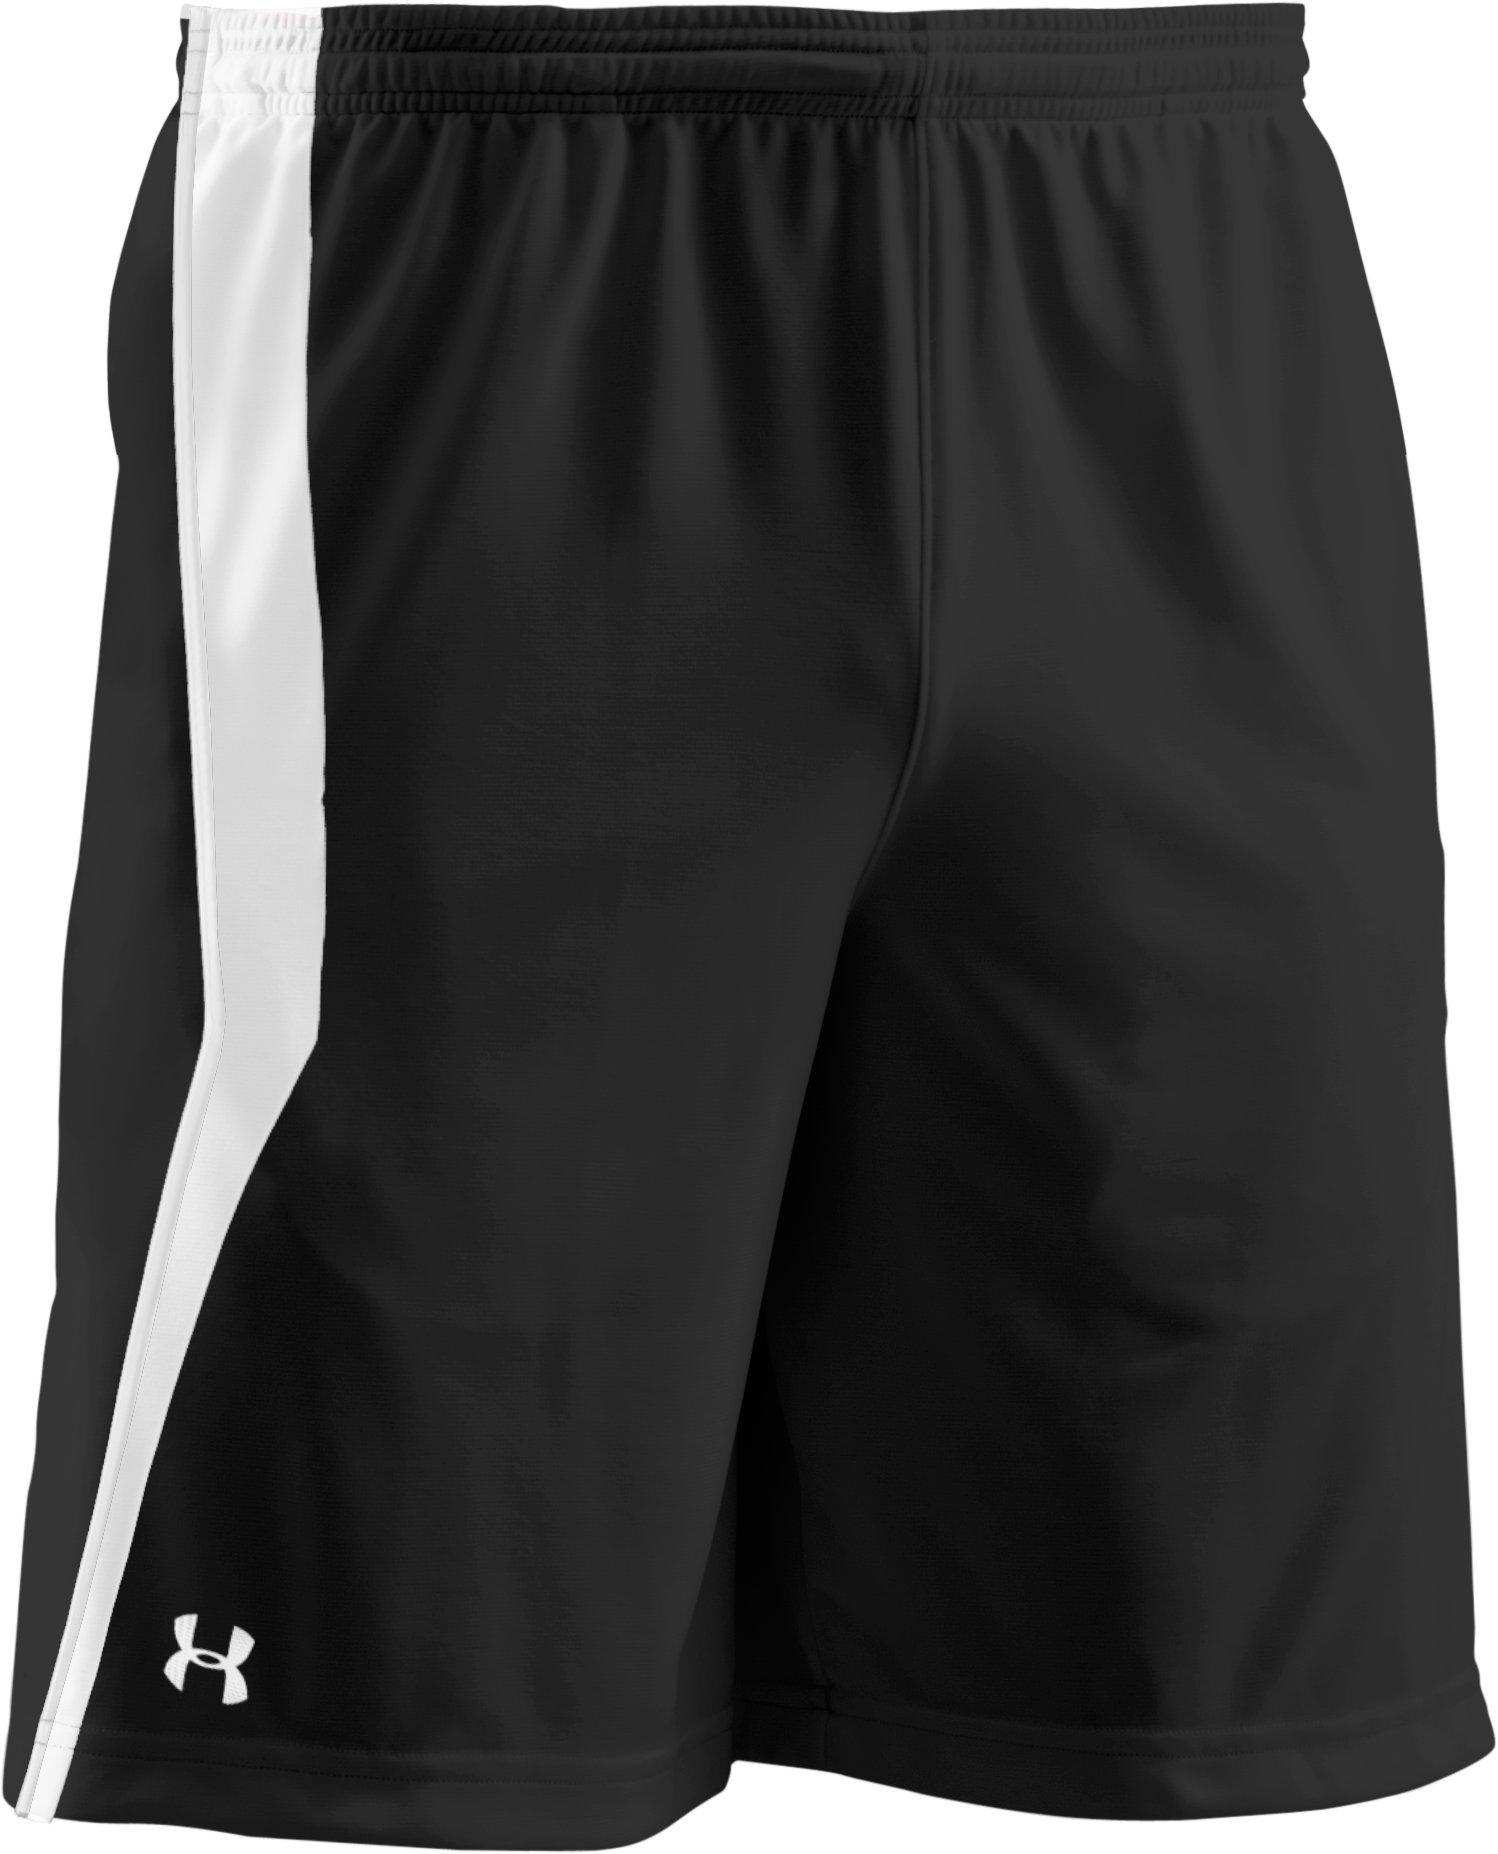 "Men's UA Multiplier 10"" Shorts, Black"